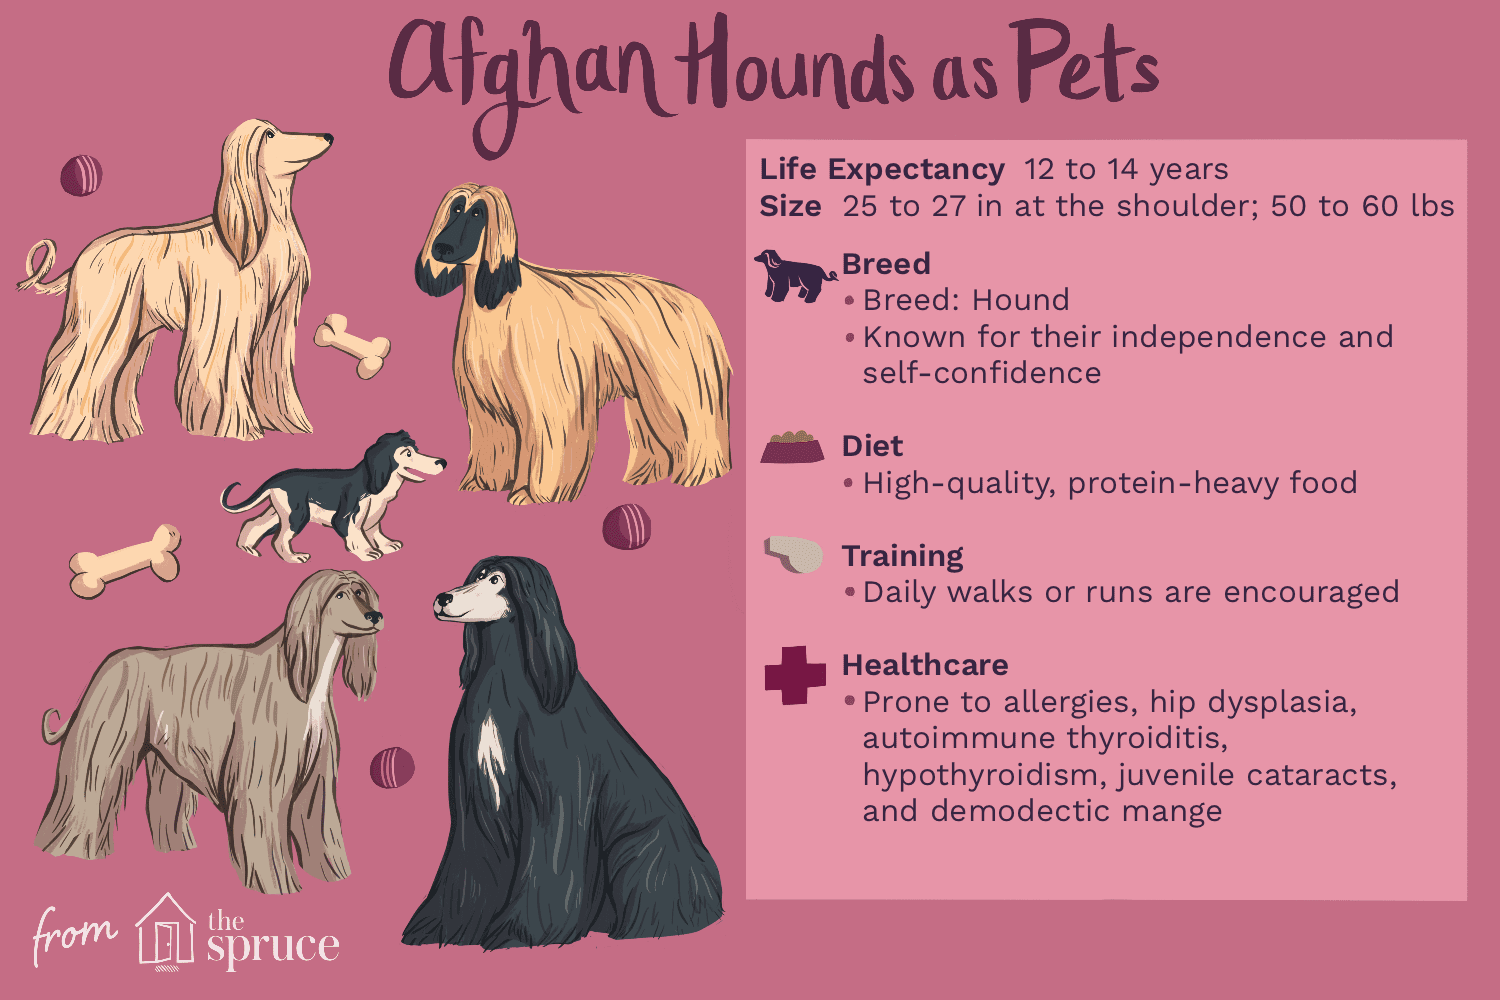 afghan hounds as pets